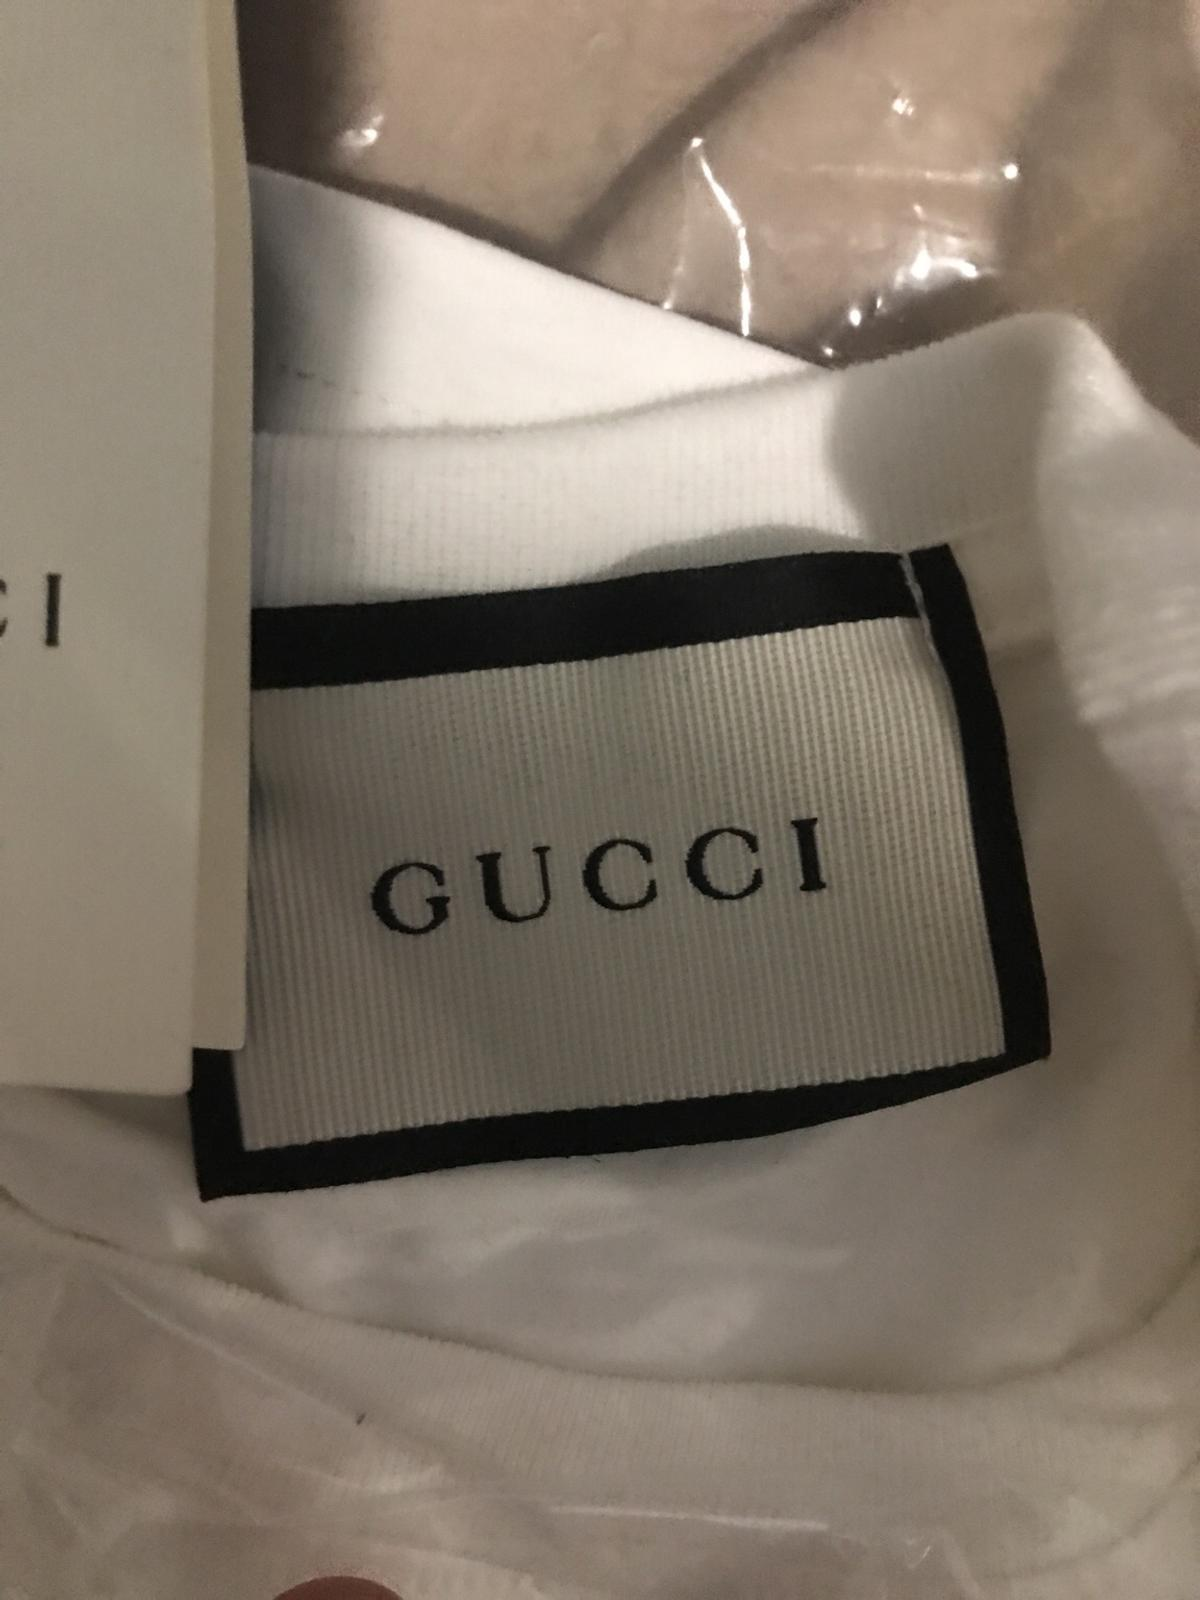 34a9bd884 White Gucci tomorrow t shirt in SL6 Maidenhead for £15.00 for sale ...